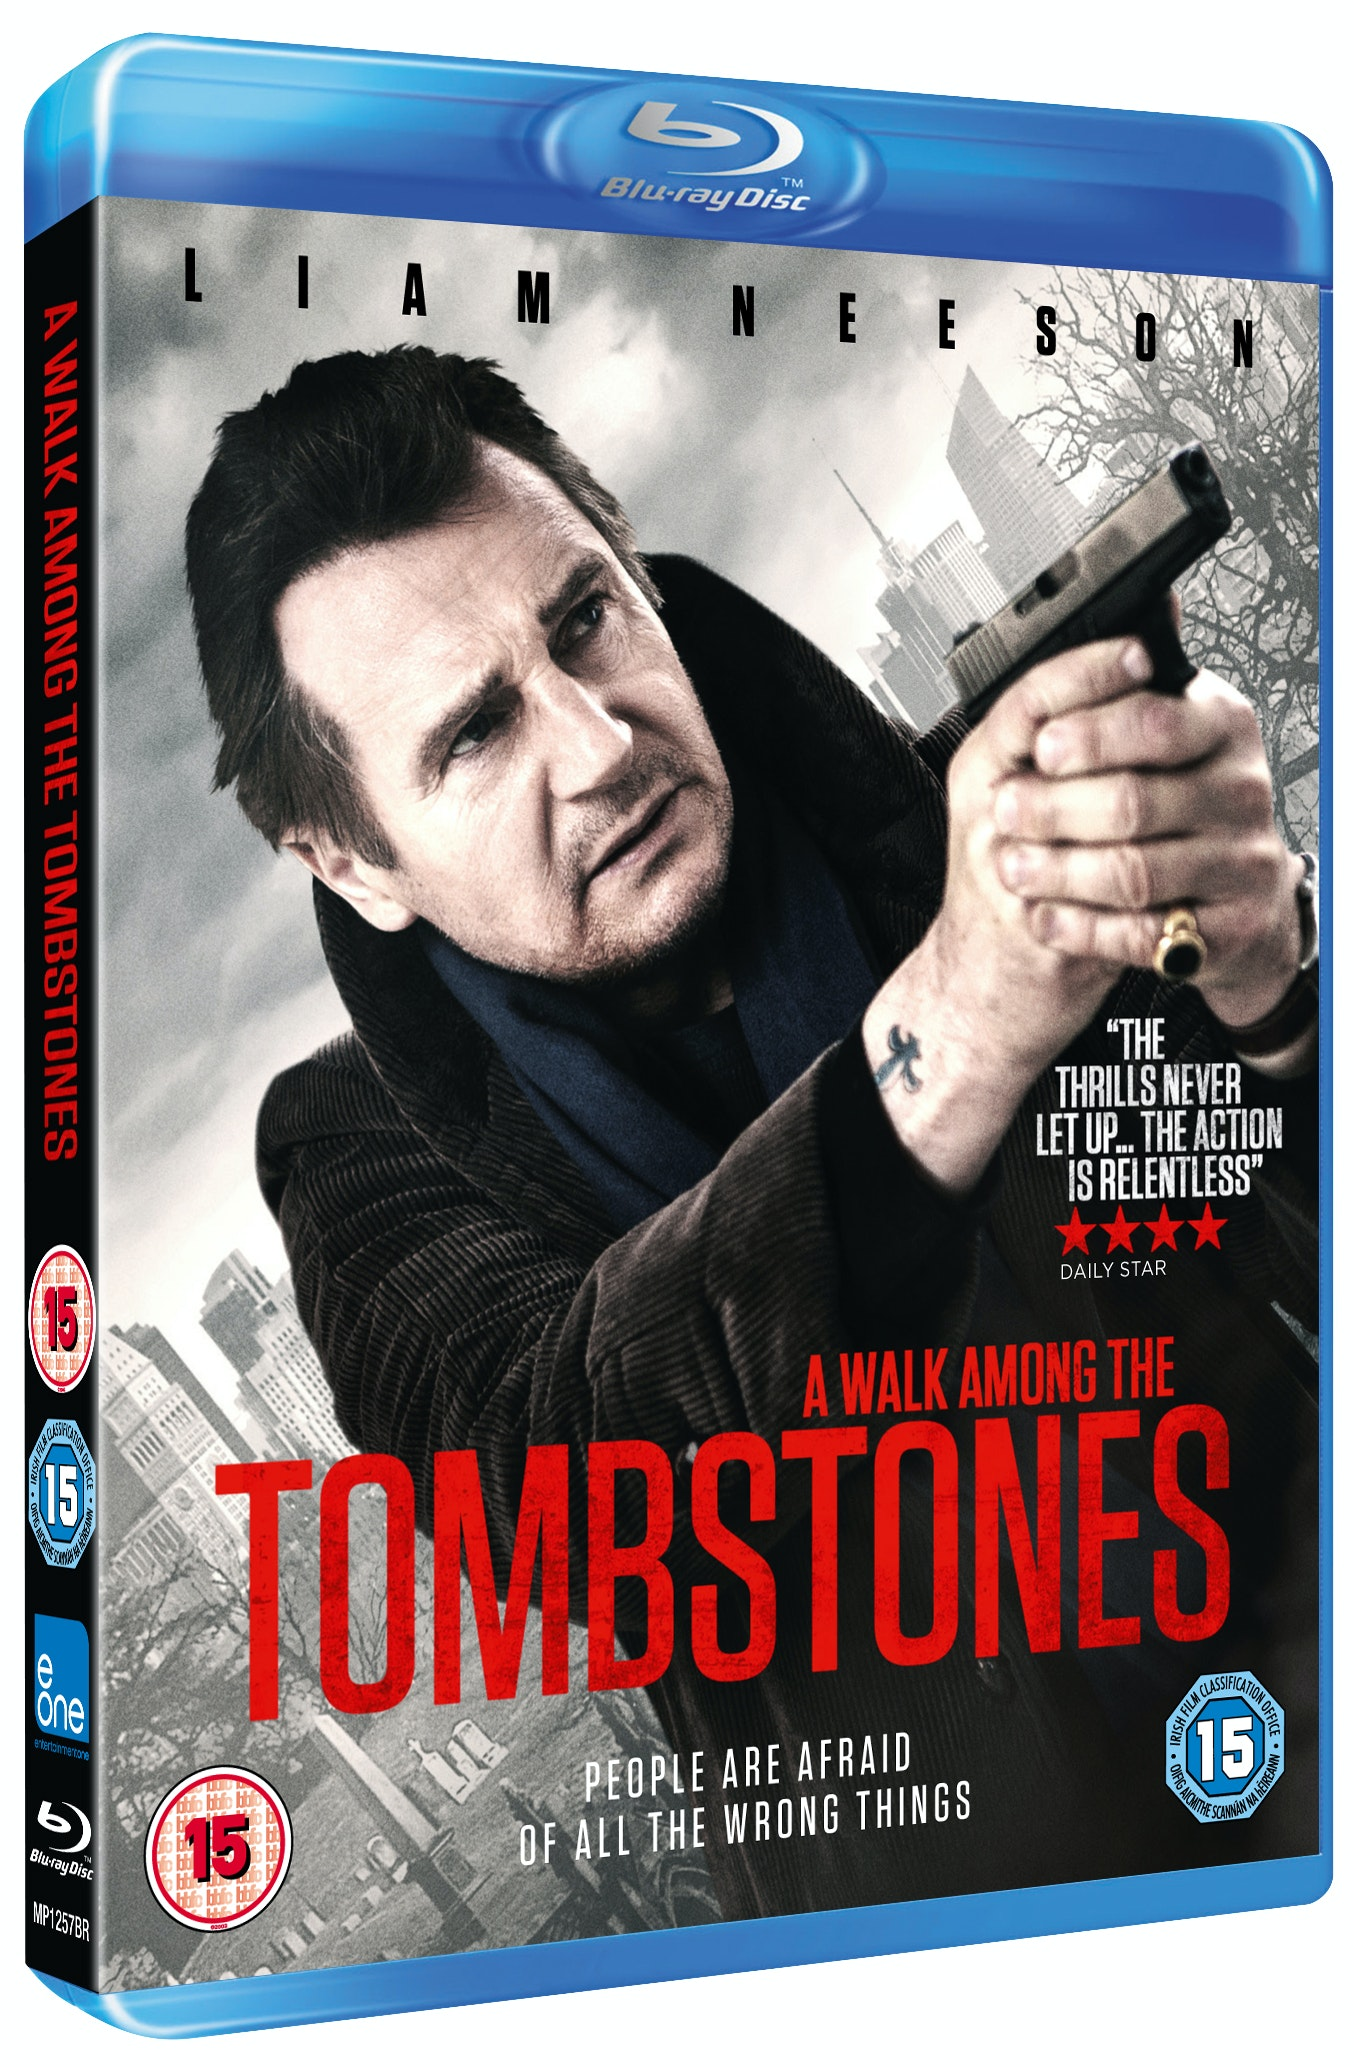 A Walk Amongst The Tombstones sweepstakes